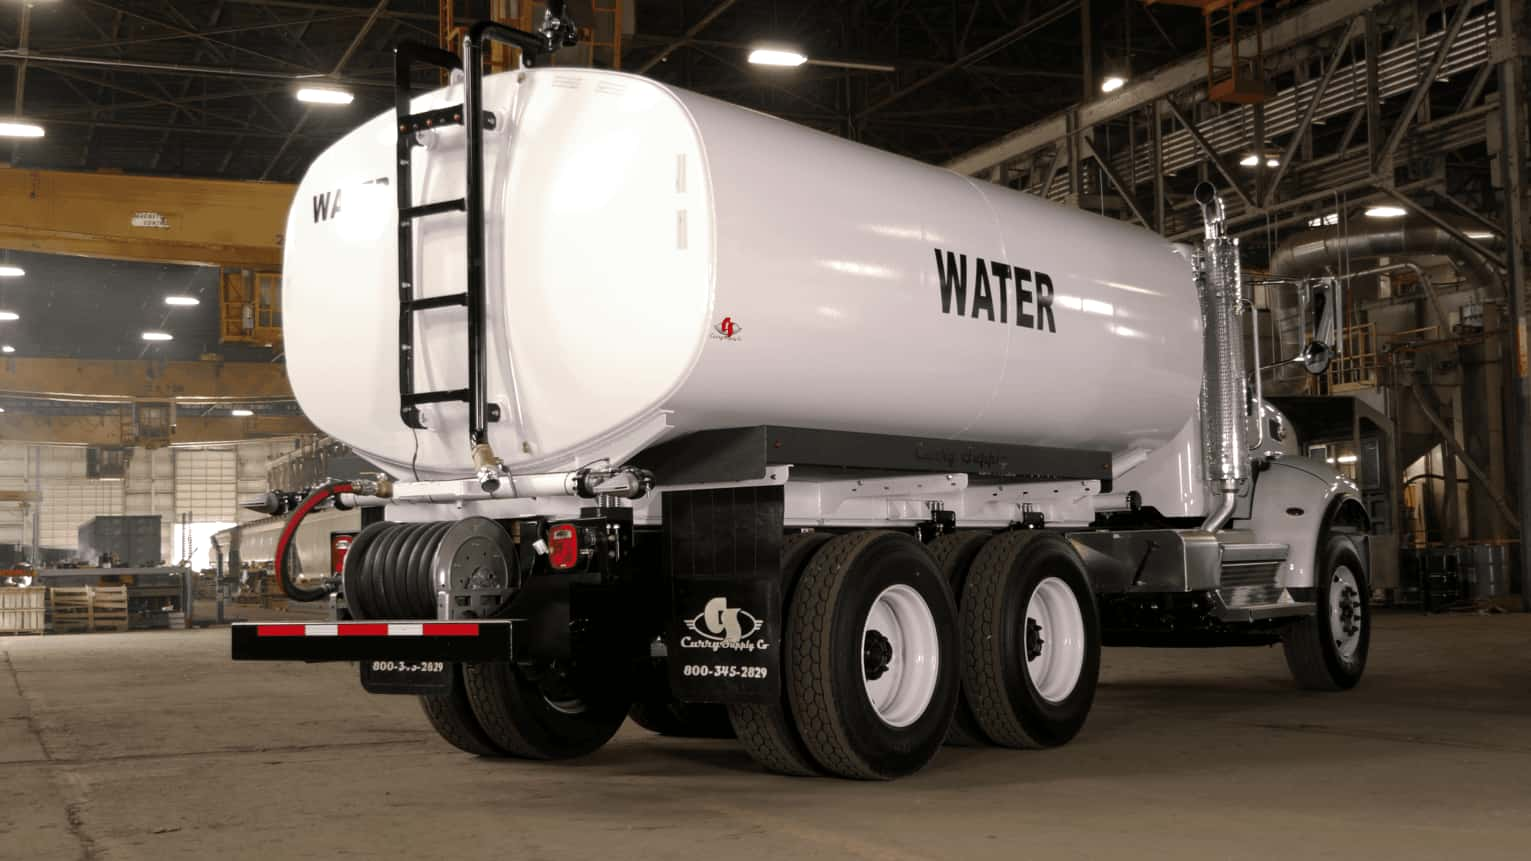 How much do water trucks hold